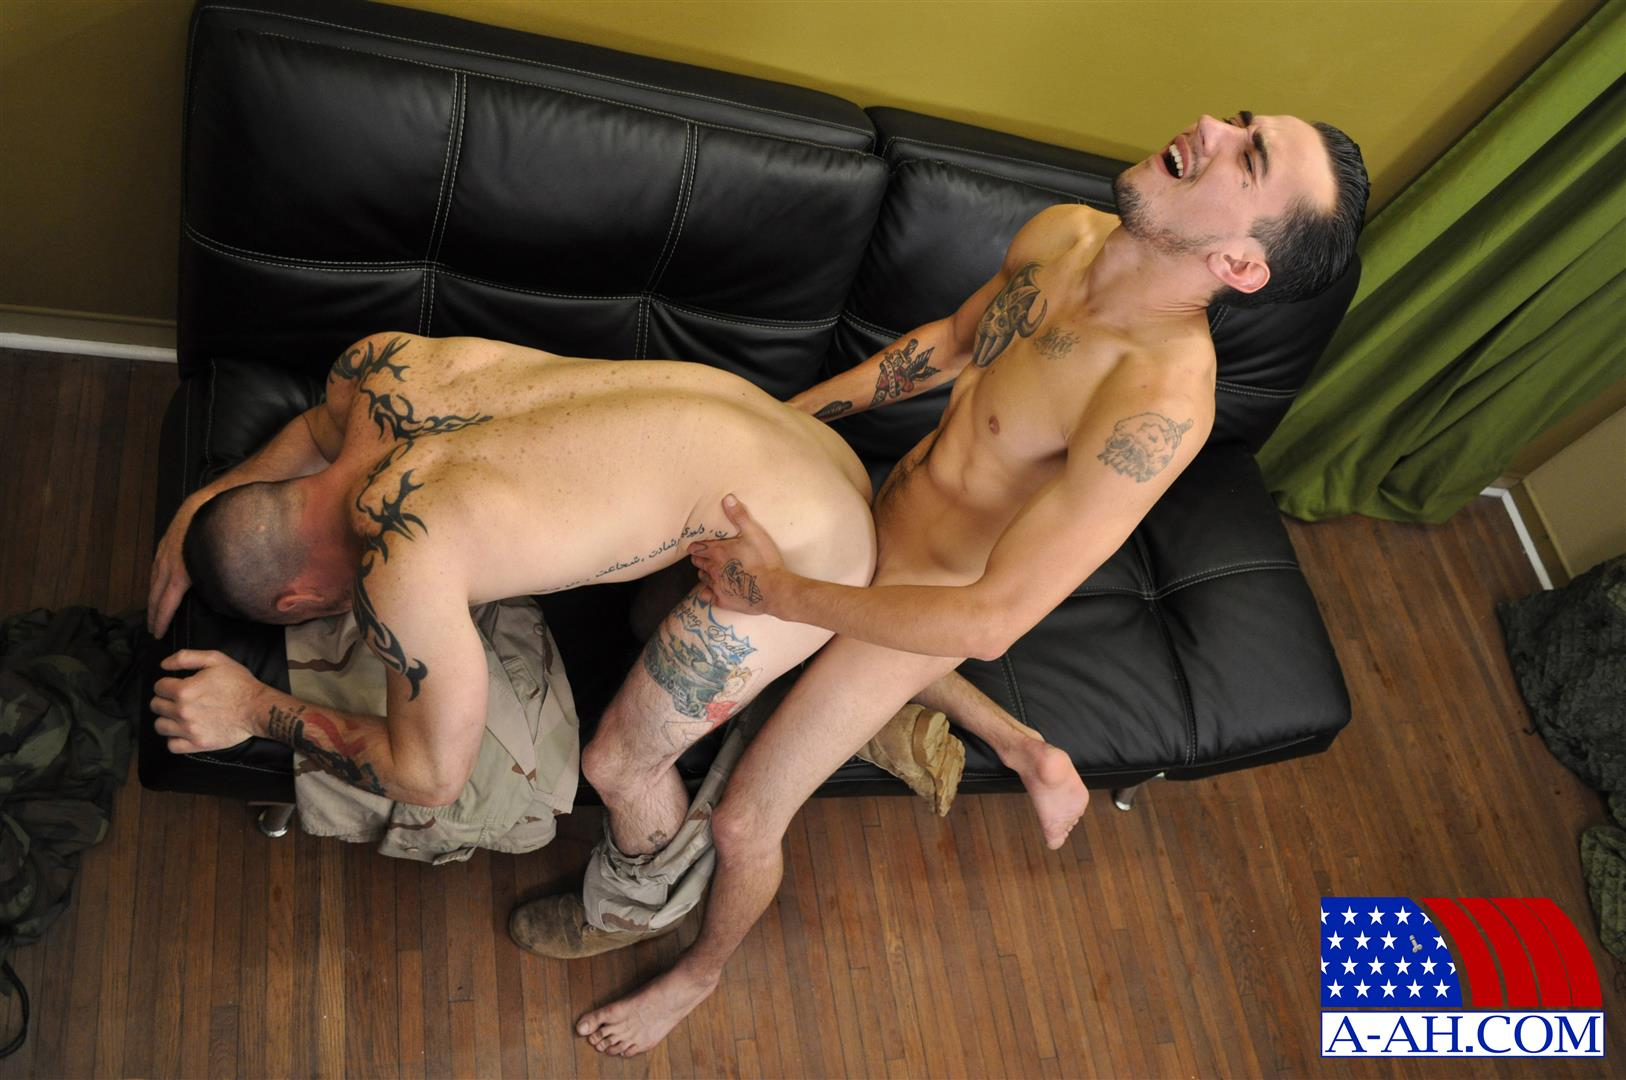 All American Heroes CIVILIAN MARTEN FUCKS SERGEANT MILES Army Guy Fucking Amateur Gay Porn 05 US Army Sergeant Gets Fucked In The Ass By His Civilian Buddy